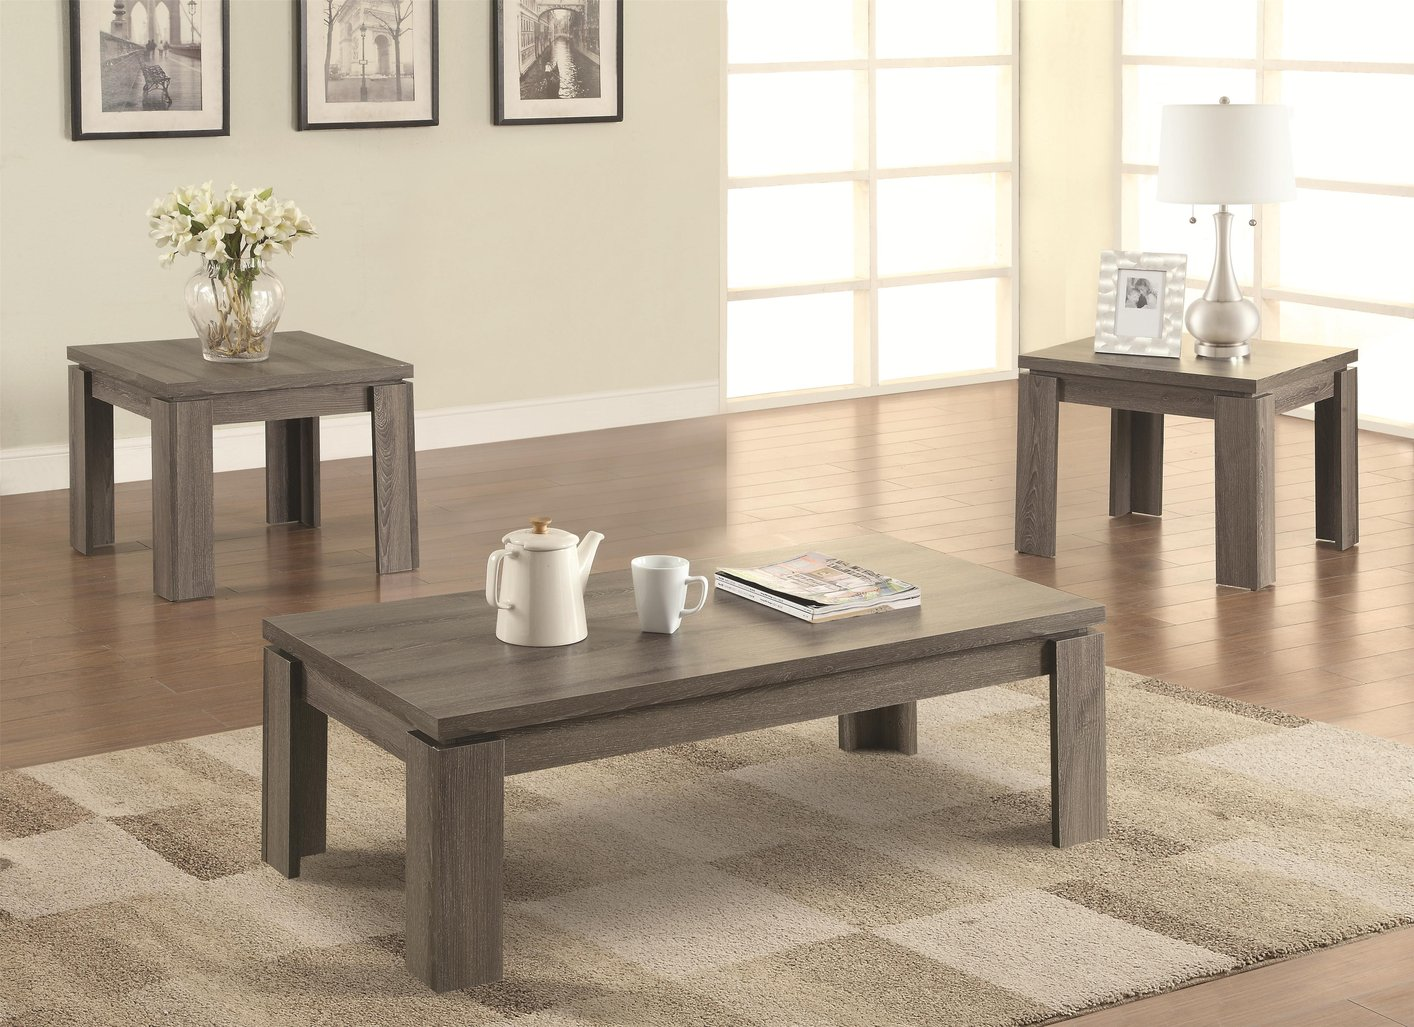 grey wood coffee table set steal sofa furniture los and end tables angeles thomasville seattle side for armchair ashley entertainment oak legs laura bedroom designs powell dining